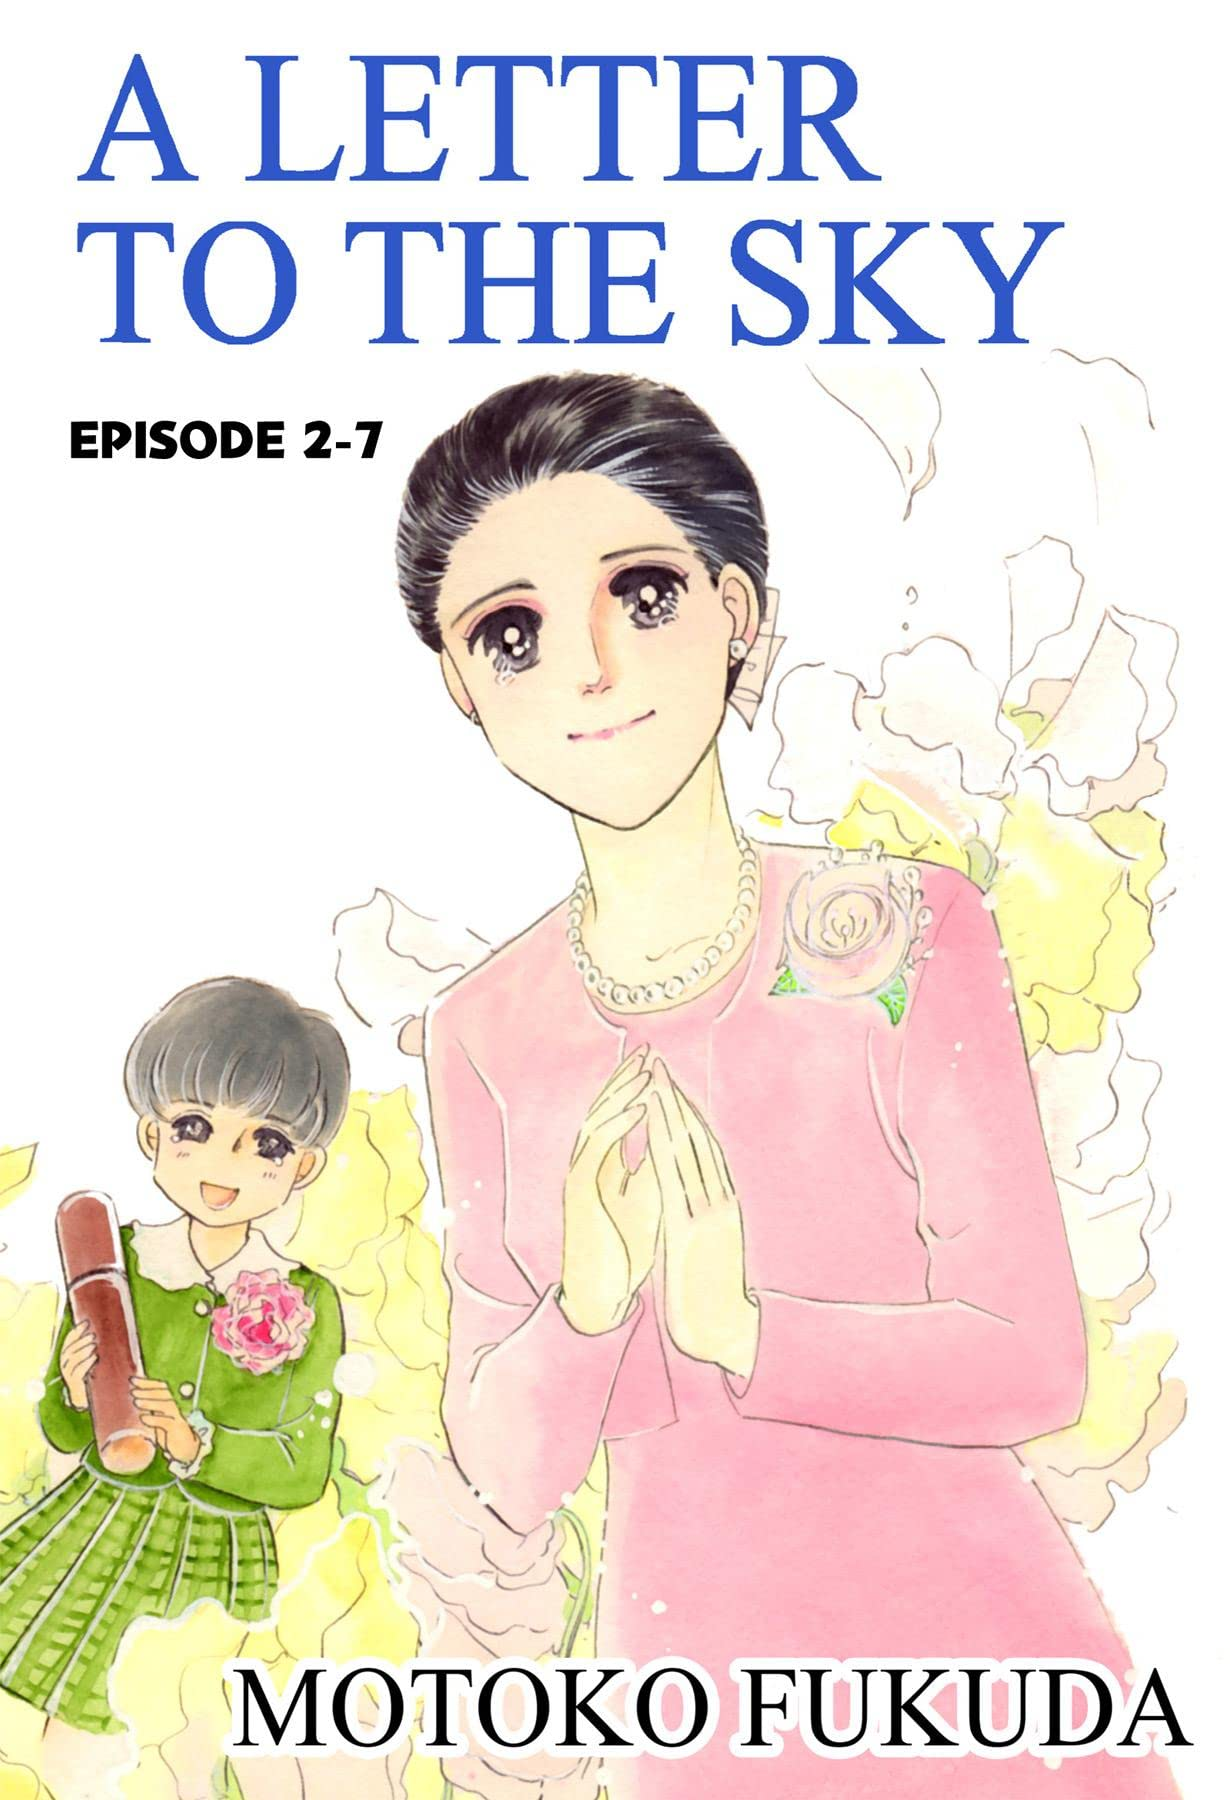 A LETTER TO THE SKY #15